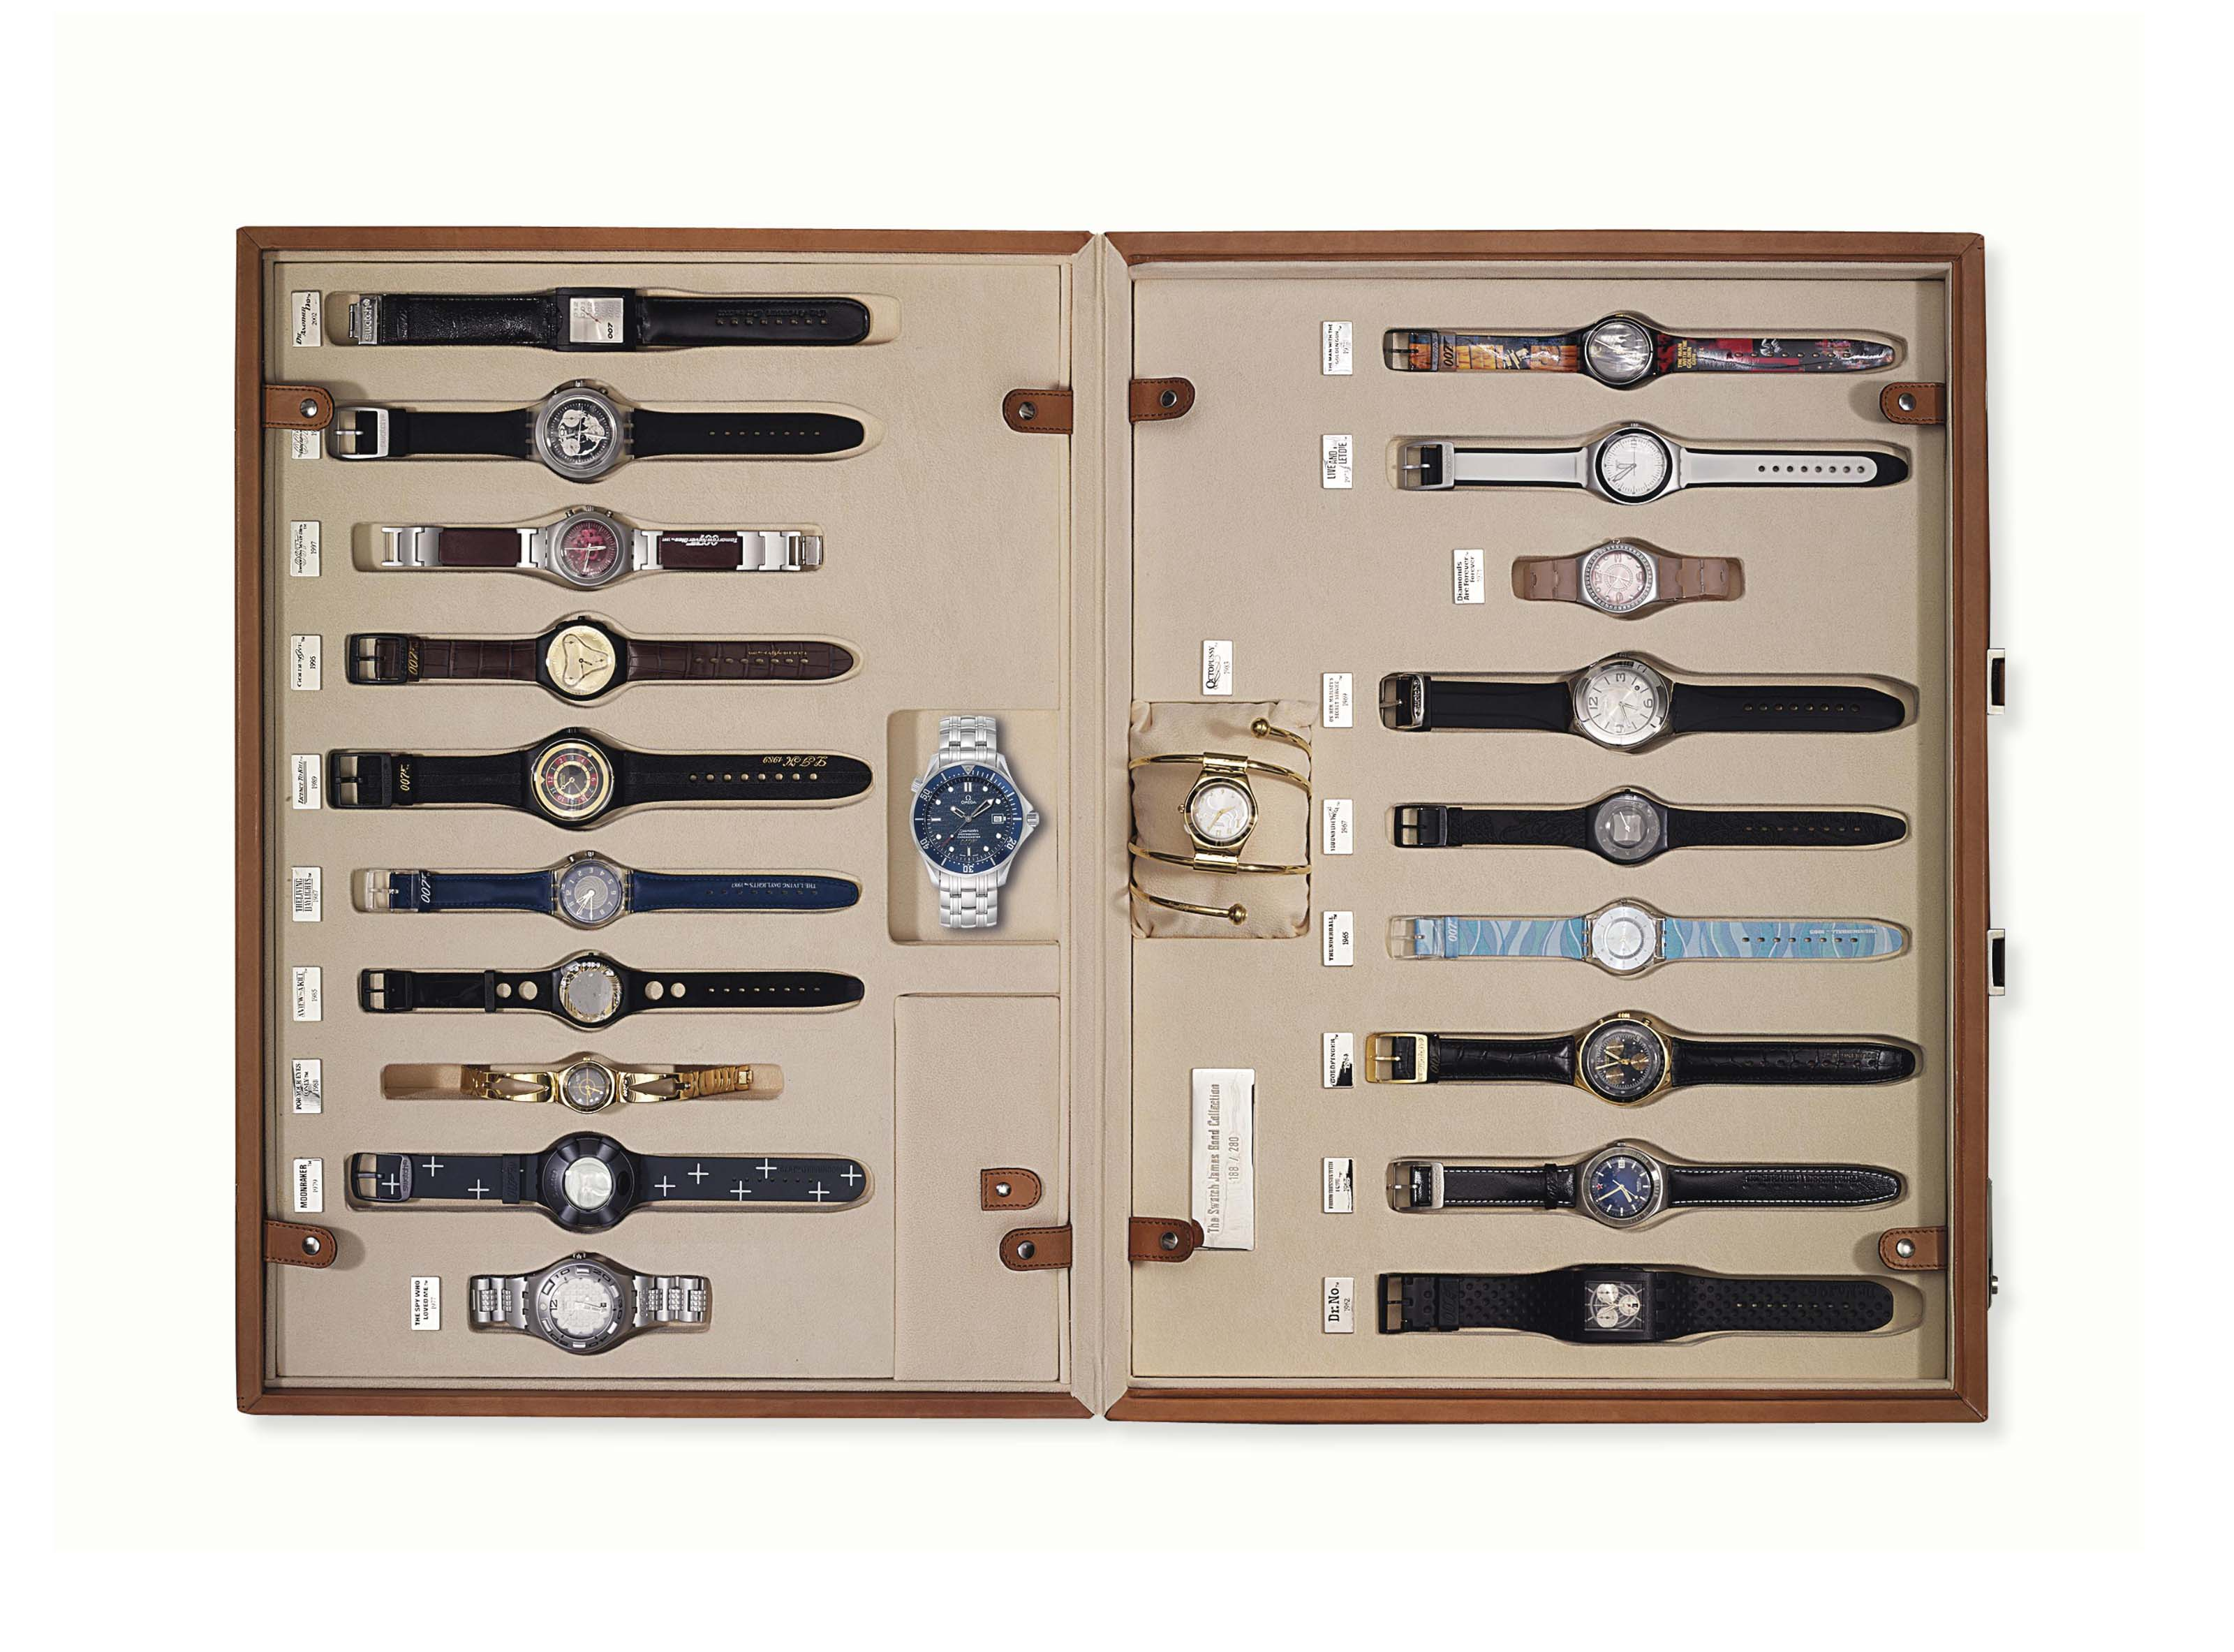 Swatch and Omega. A group of twenty-one quartz and automatic wristwatches, made to commemorate the 40th anniversary of the James Bond movie